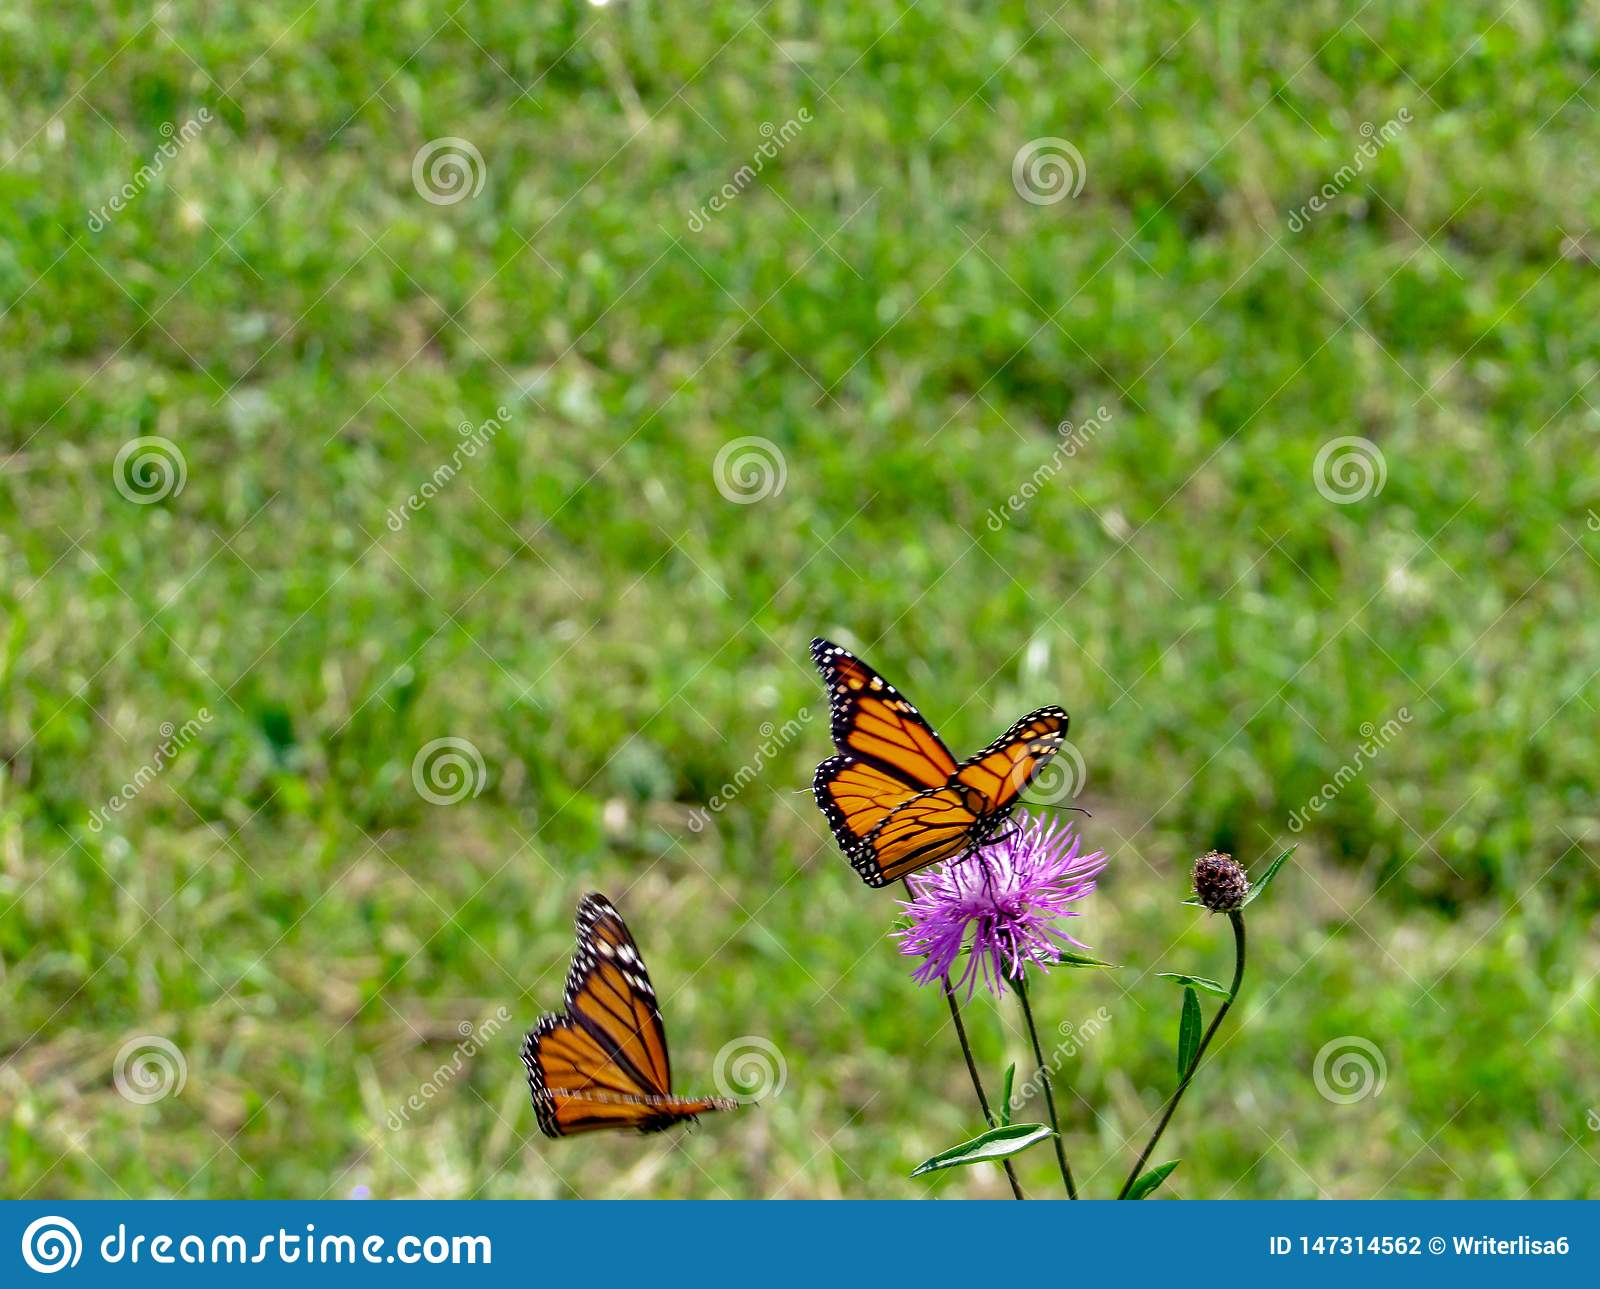 Monarch Butterfly perched on a purple flower